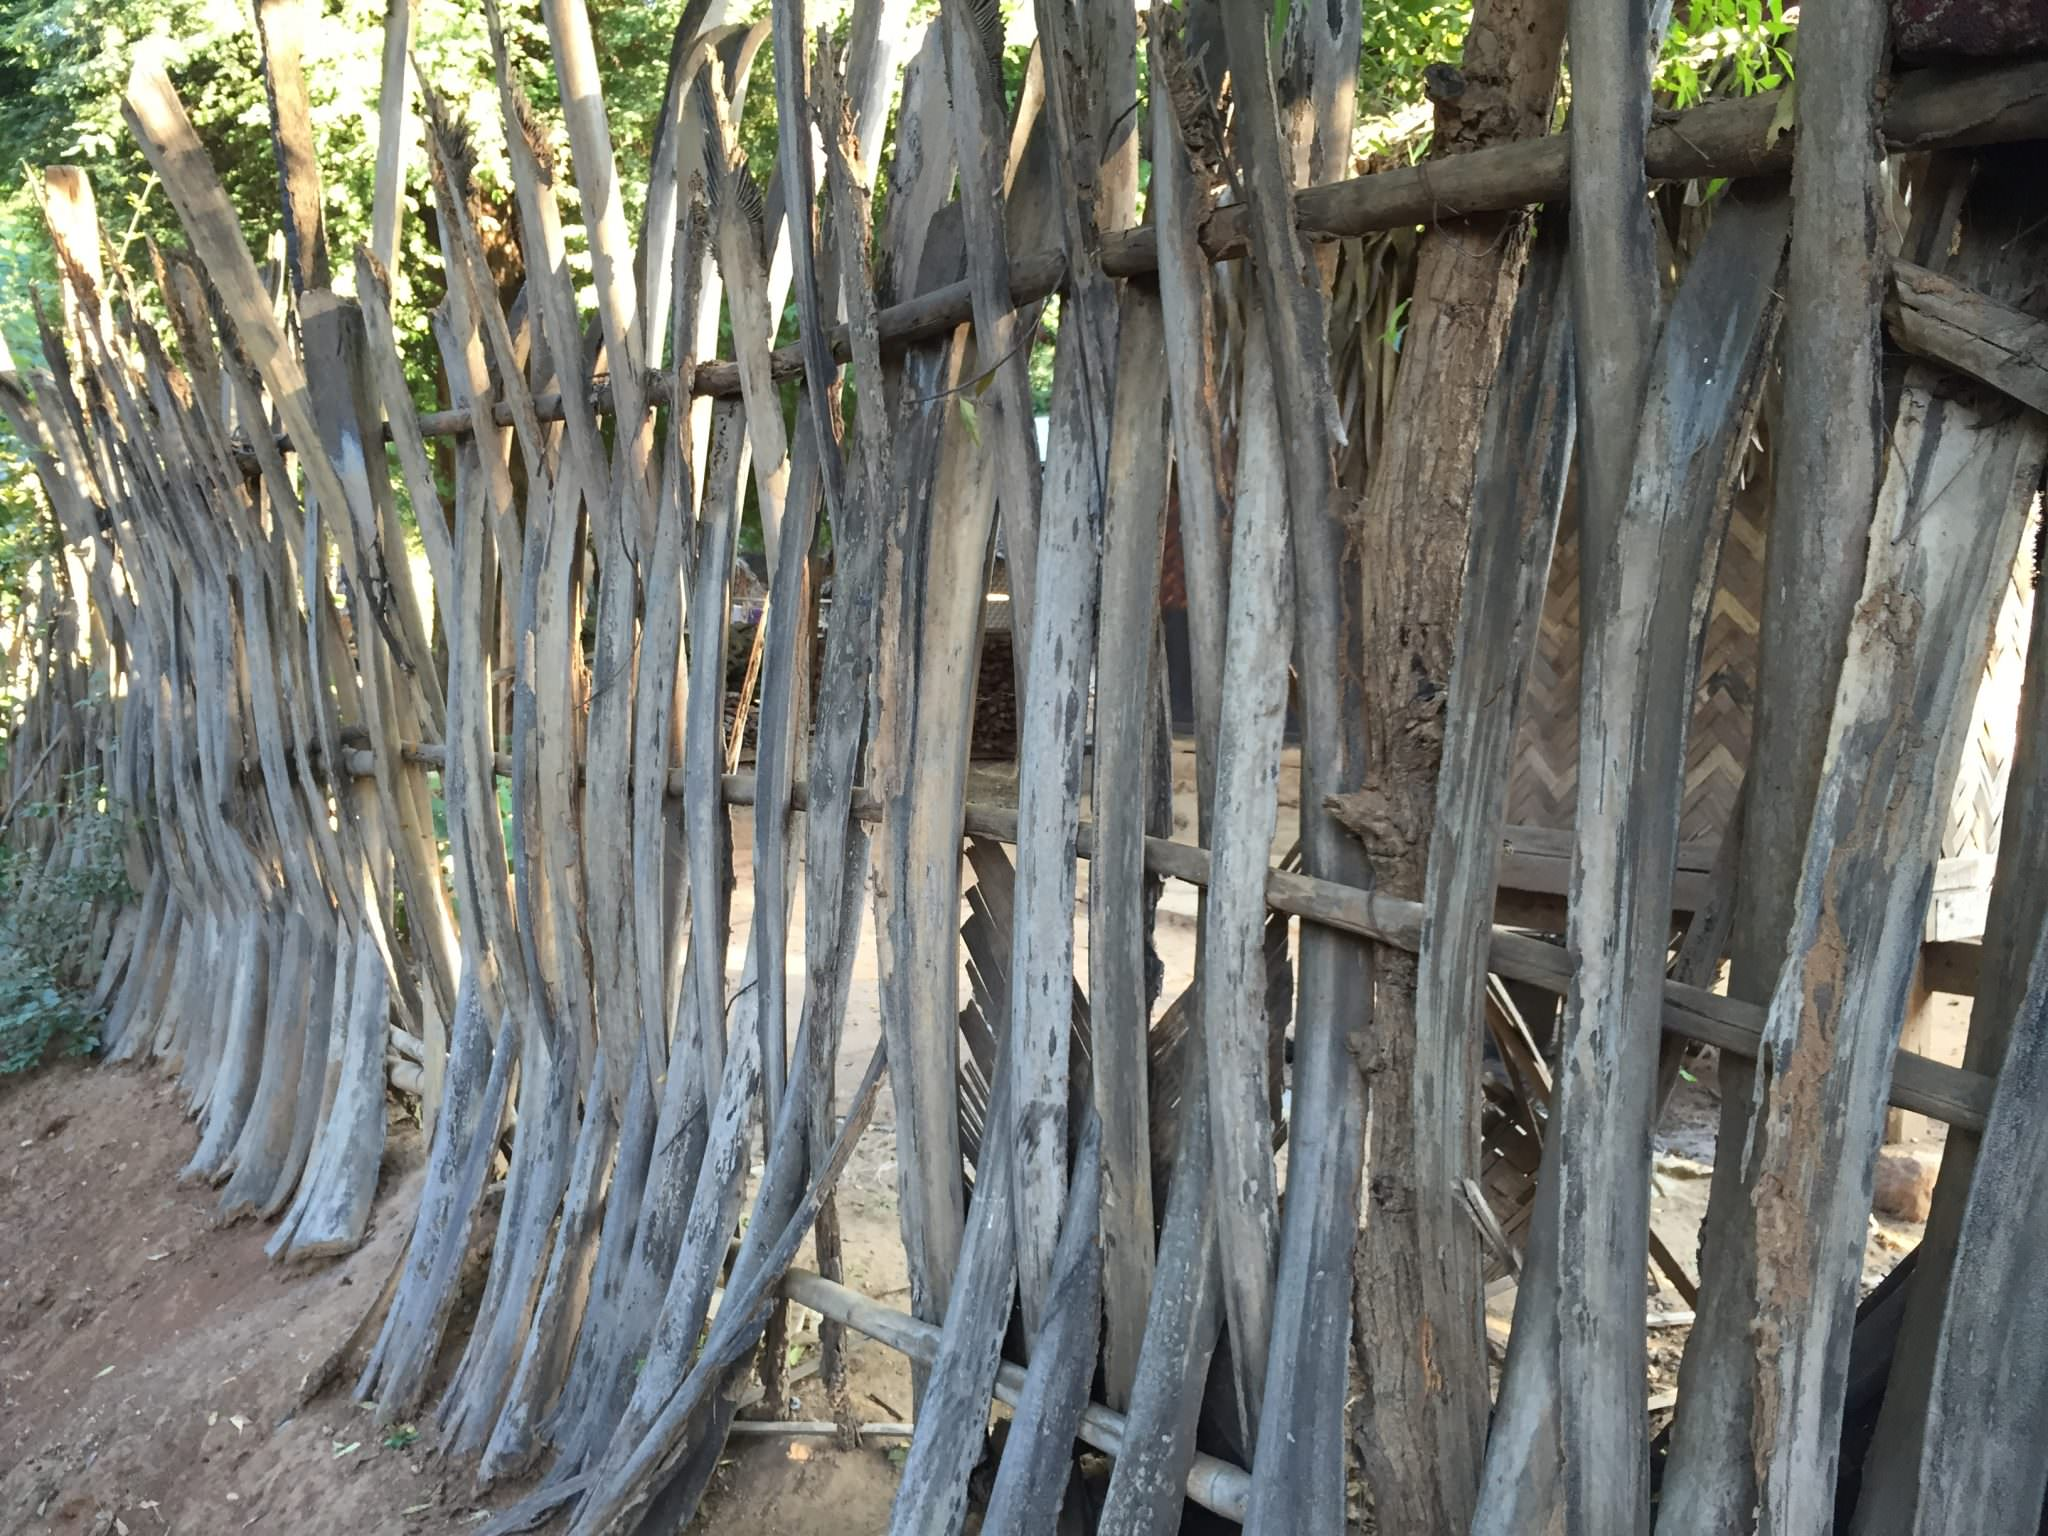 Palm fences lining every communal village street have a beautiful, sculptural design. © 2015 Gail Jessen